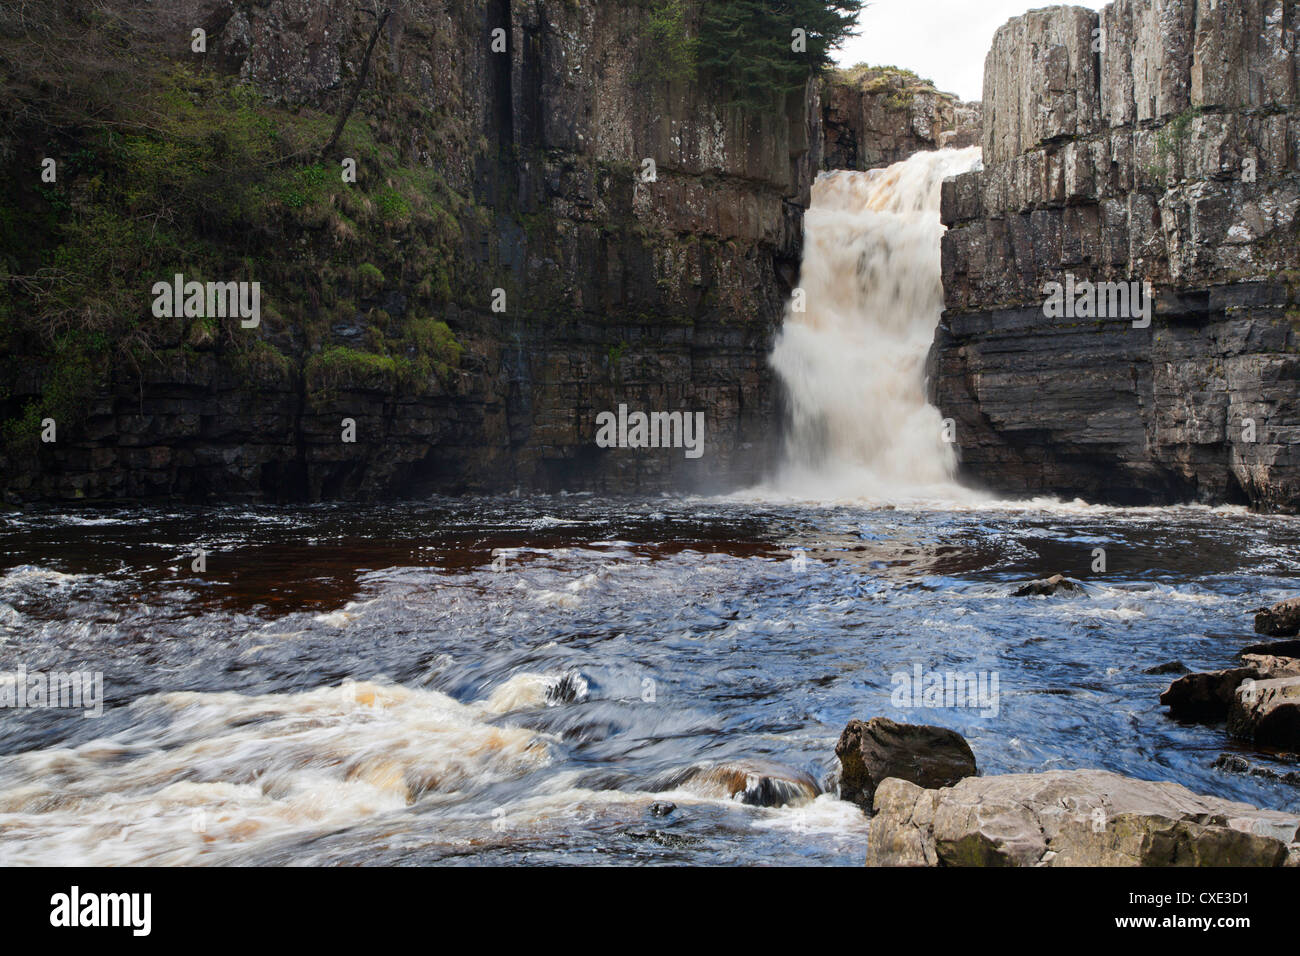 High Force in Upper Teesdale, County Durham, England - Stock Image